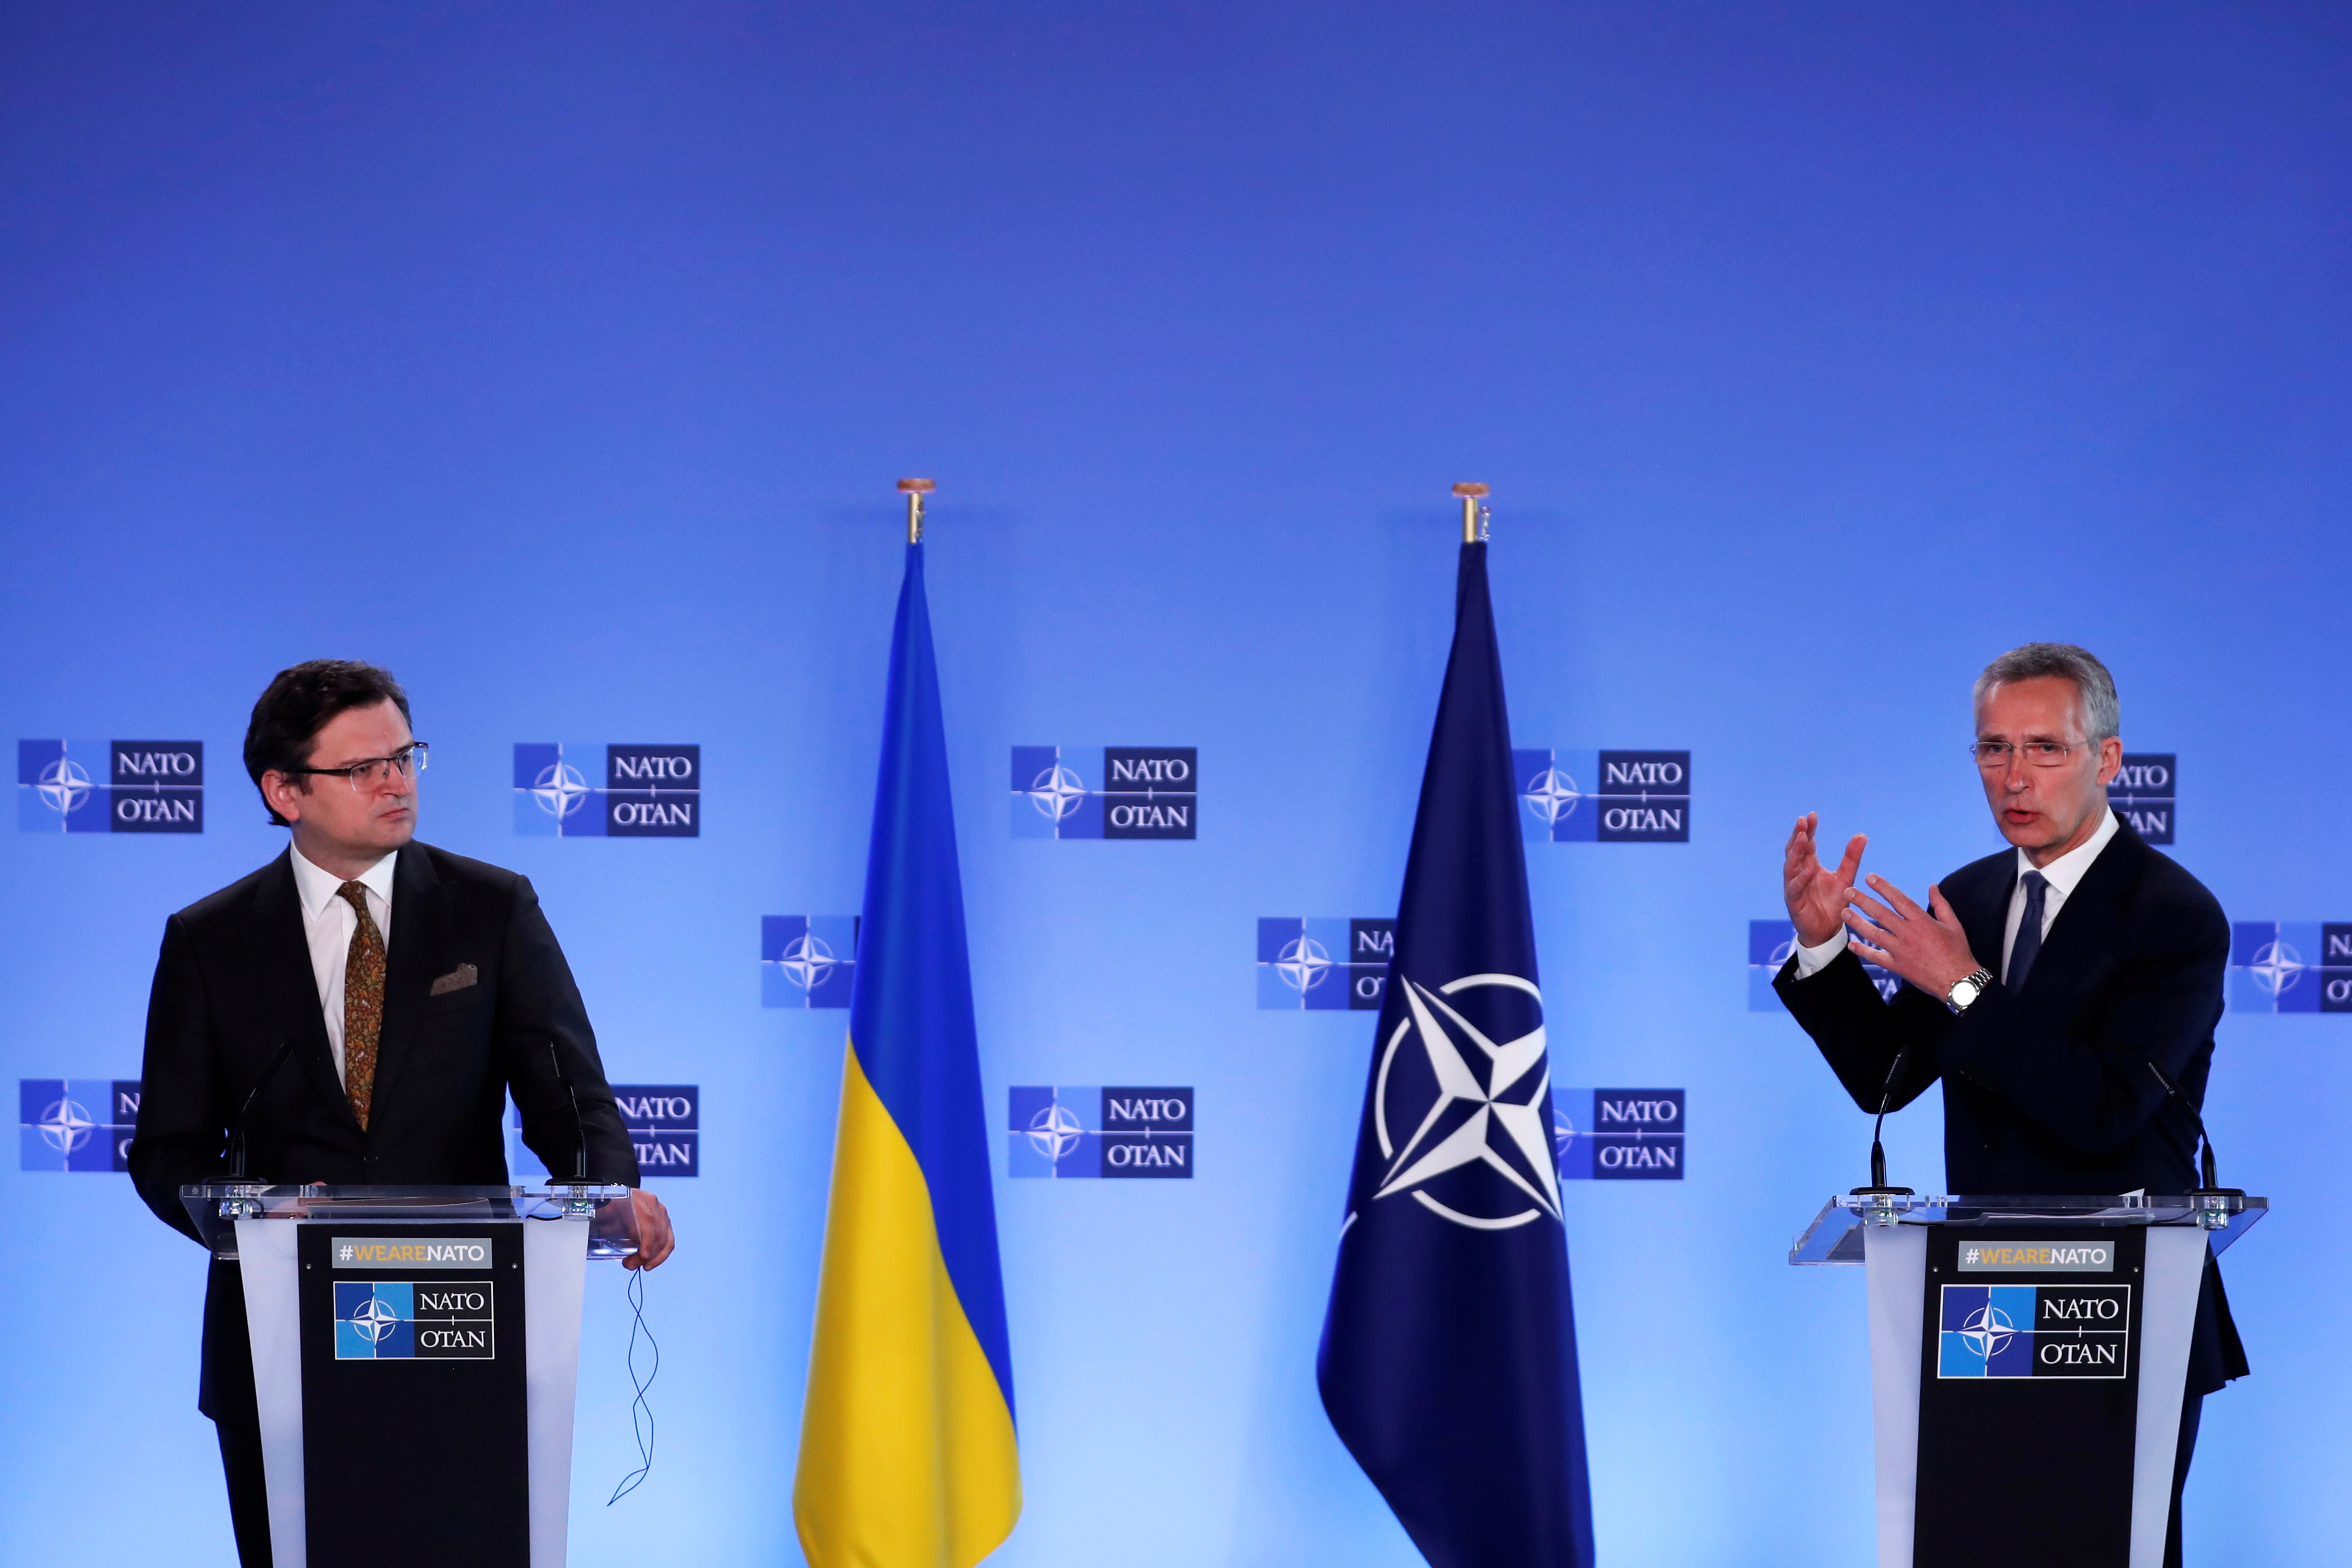 NATO Secretary General Jens Stoltenberg and Ukrainian Foreign Minister Dmytro Kuleba give a press conference in Brussels, Belgium, April 13, 2021. Francisco Seco/Pool via REUTERS